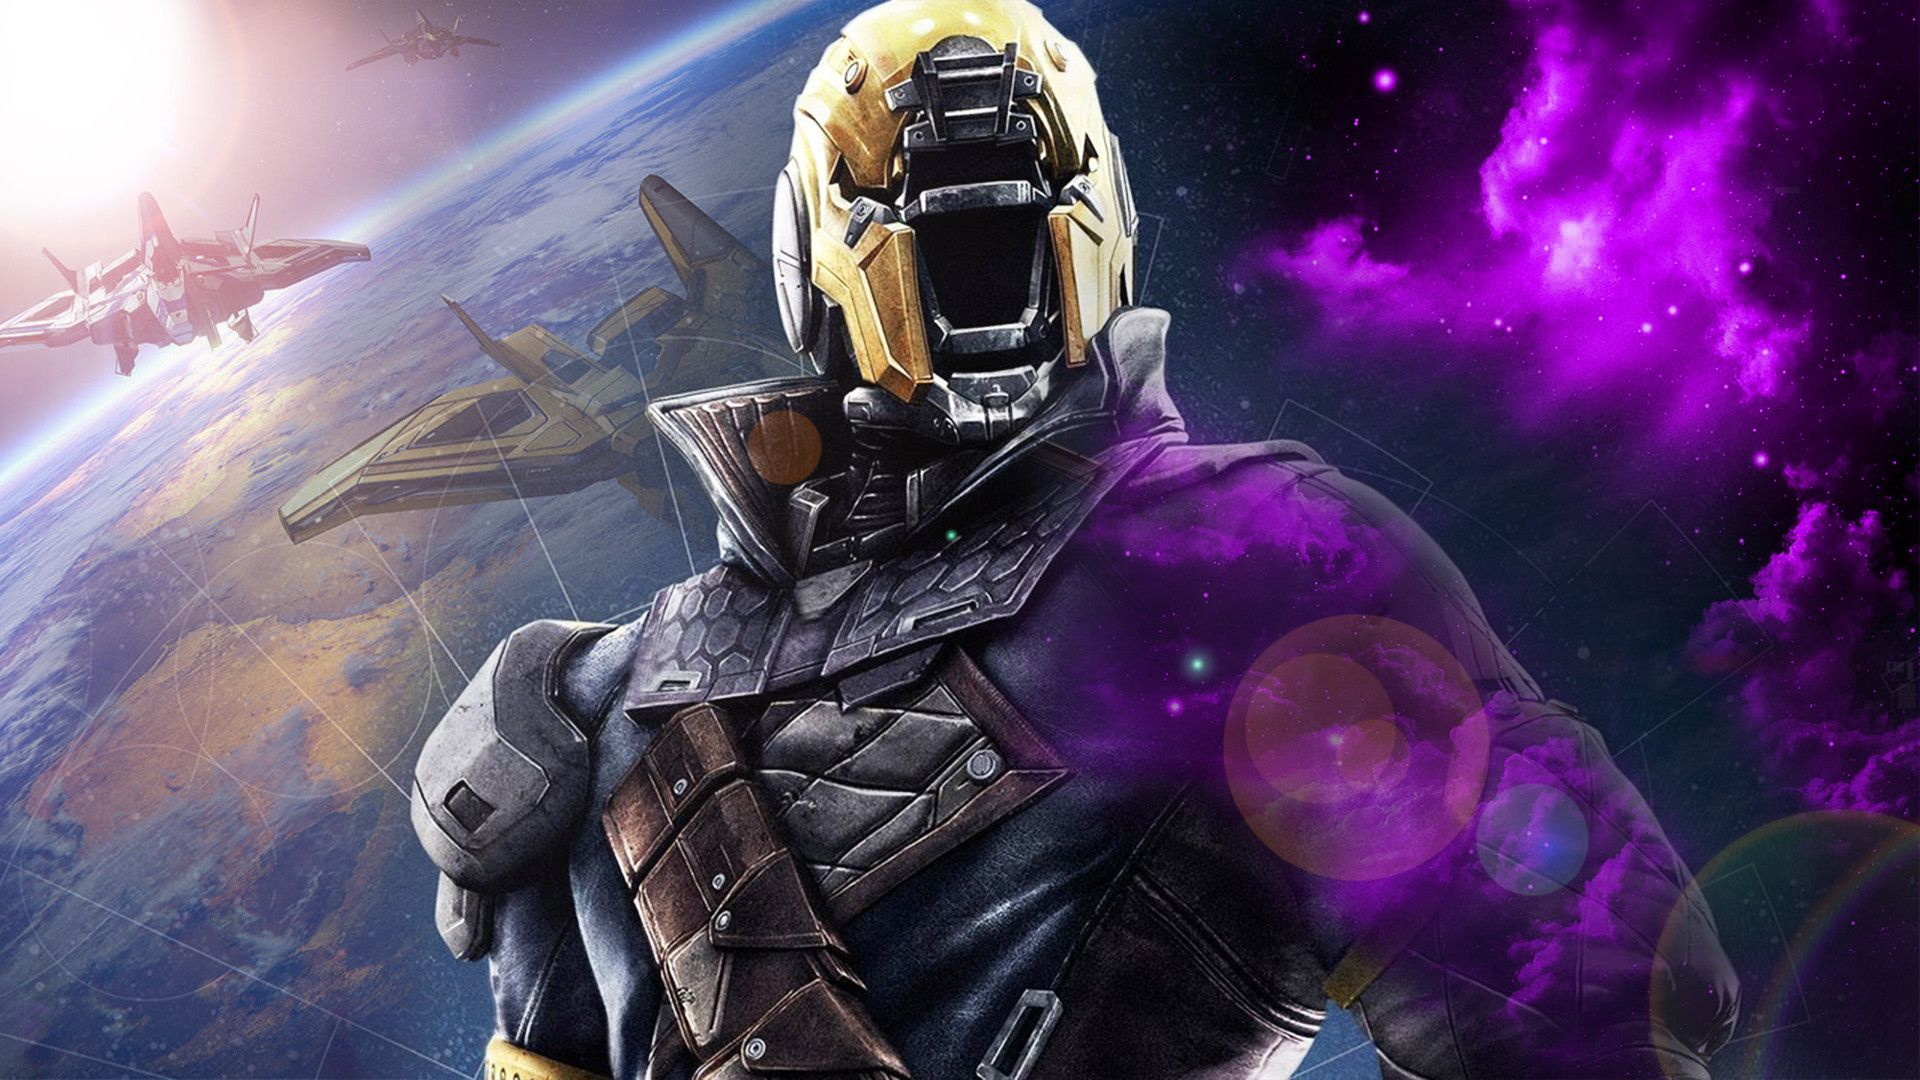 More fanart awesomeness Destiny Fan art Pinterest